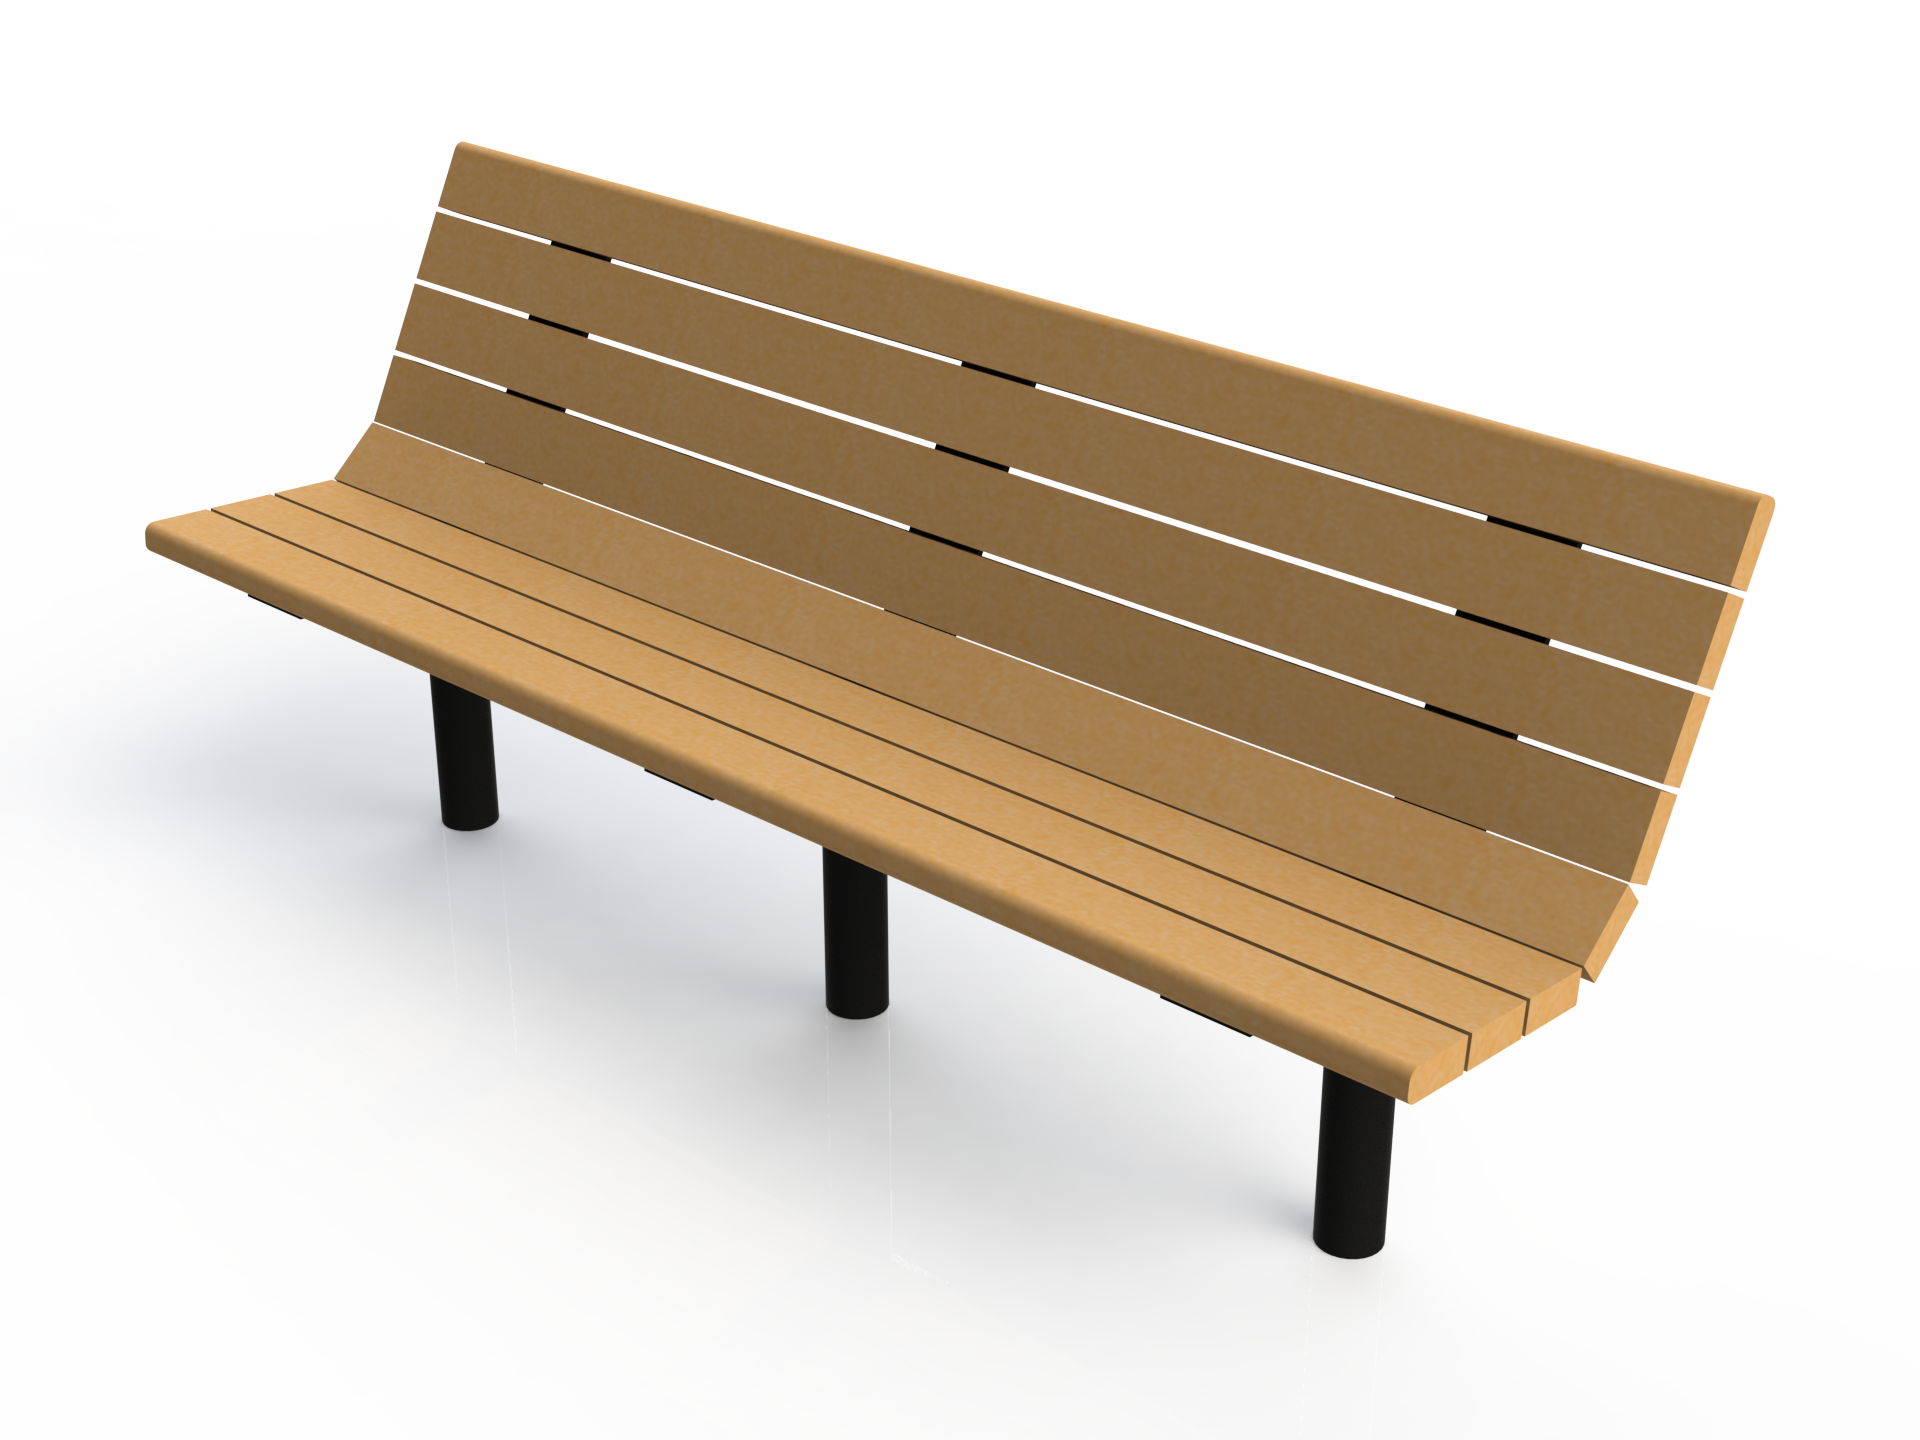 School Bench Png Transparent School Bench Png Images Pluspng